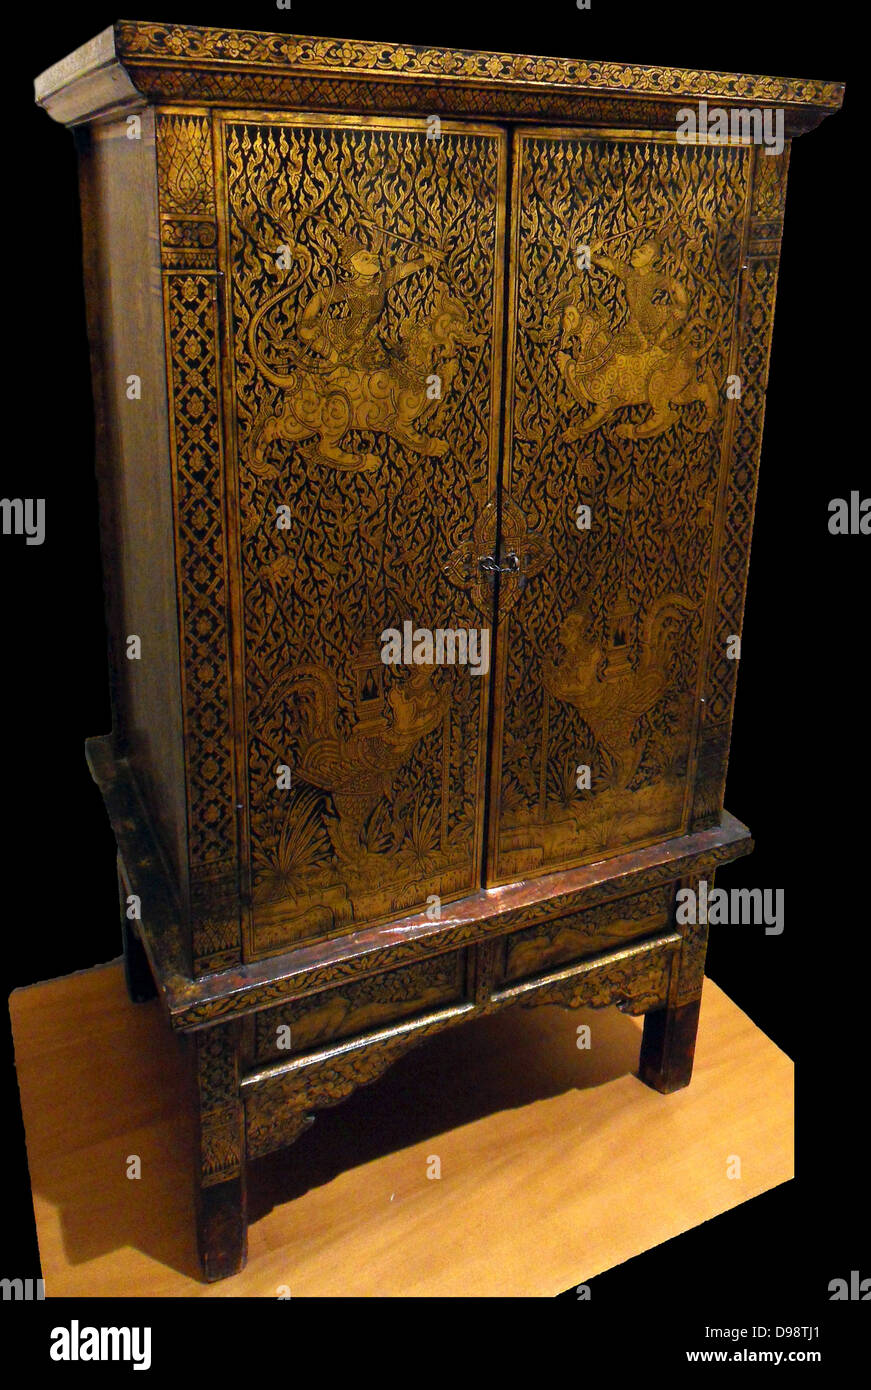 Lacquer Cabinet Stockfotos Lacquer Cabinet Bilder Alamy